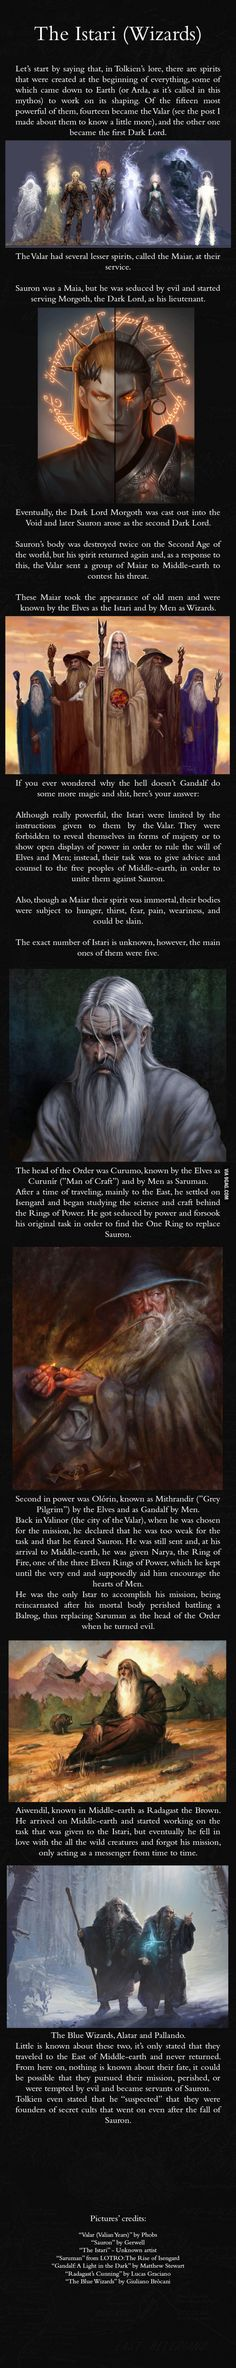 The wizards of Middle Earth, origins Lord of the Rings LOTR J R R Tolkien the Silmarillion